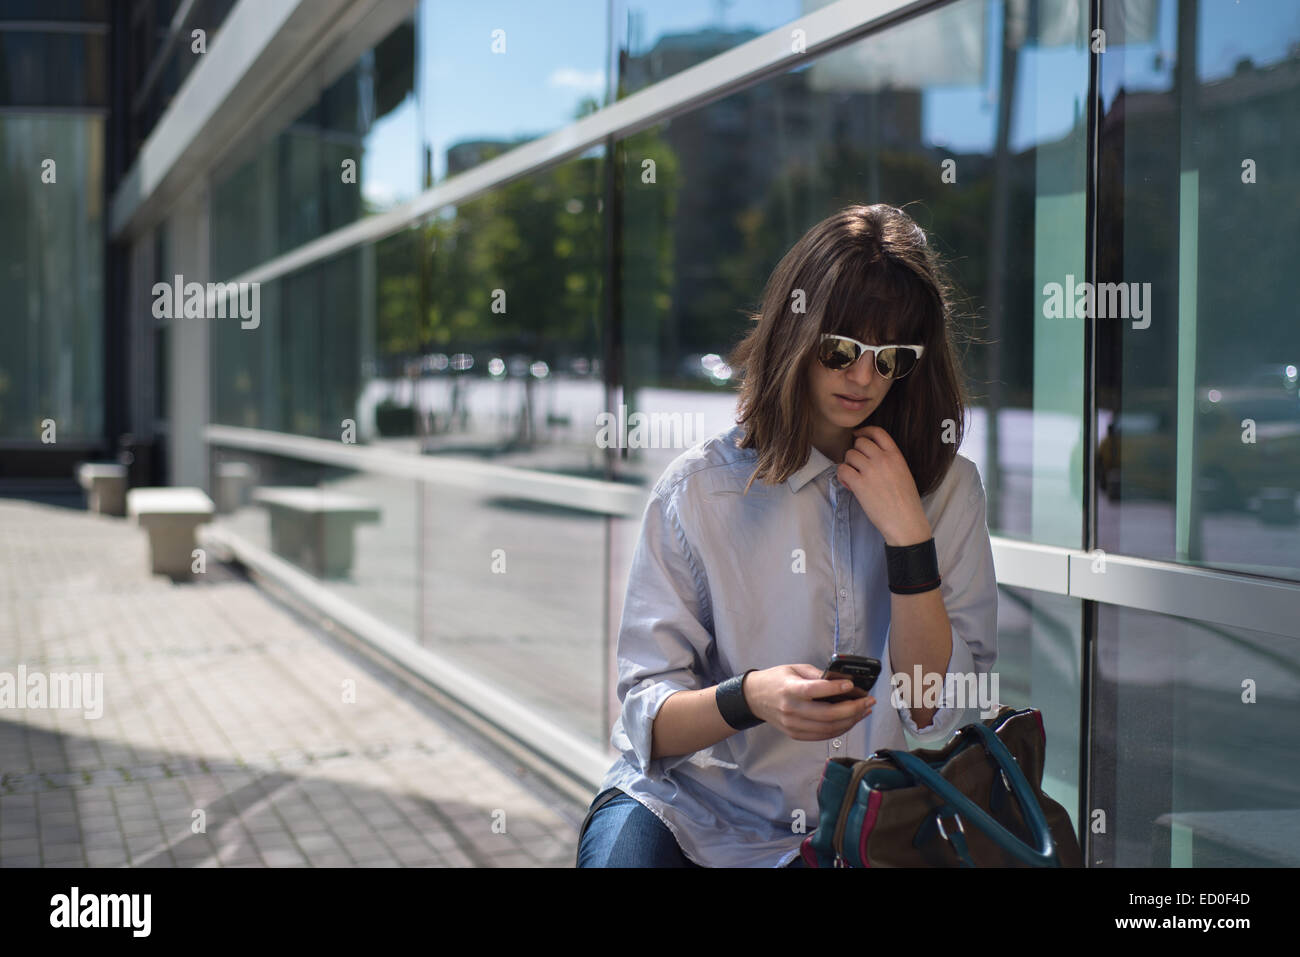 Woman sitting in street looking at mobile phone, Sofia, Bulgaria - Stock Image